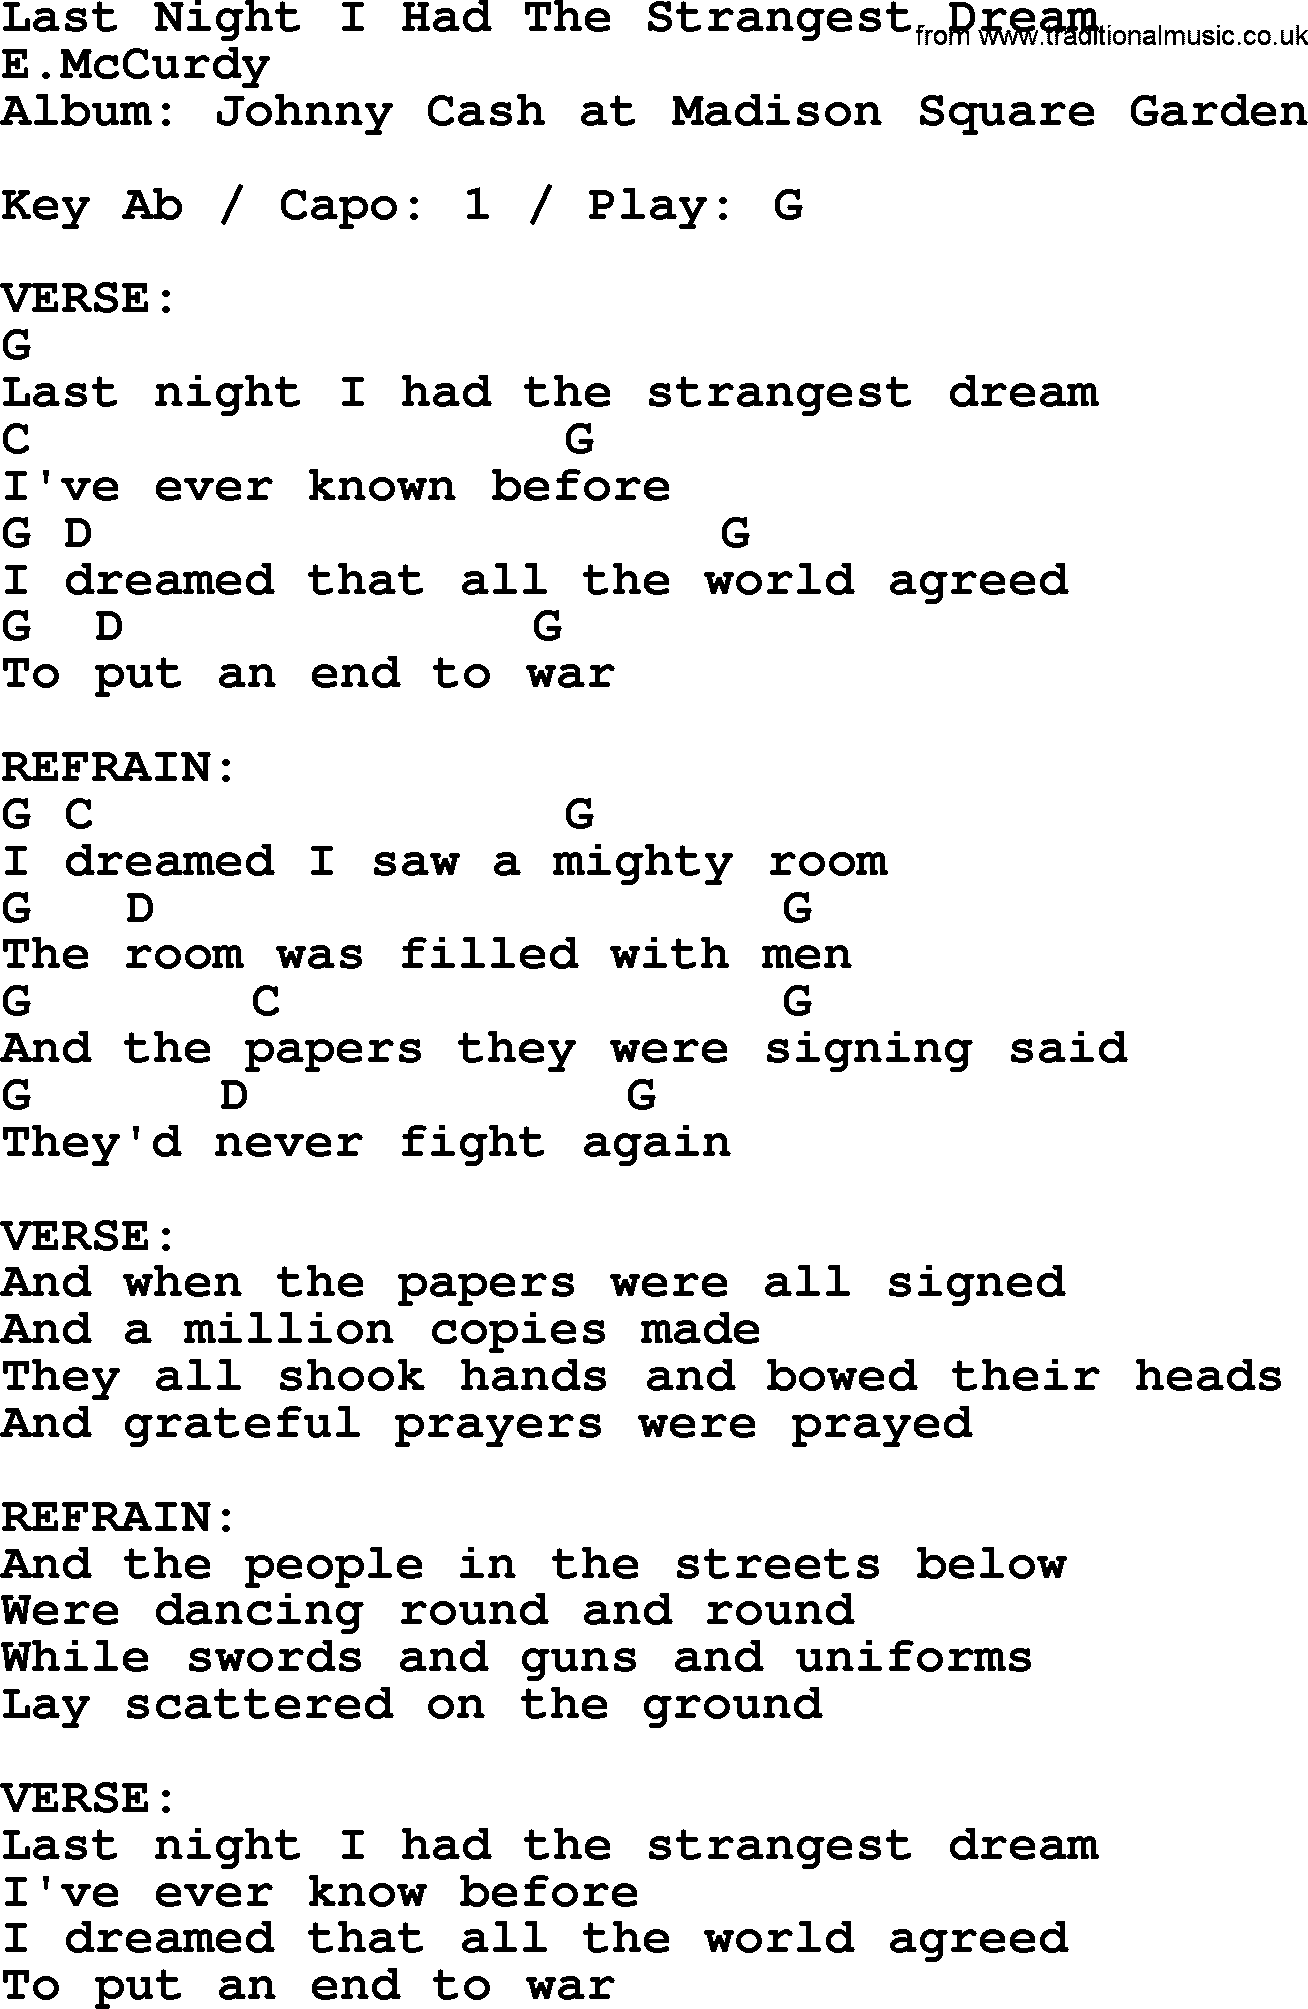 Johnny Cash Song Last Night I Had The Strangest Dream Lyrics And